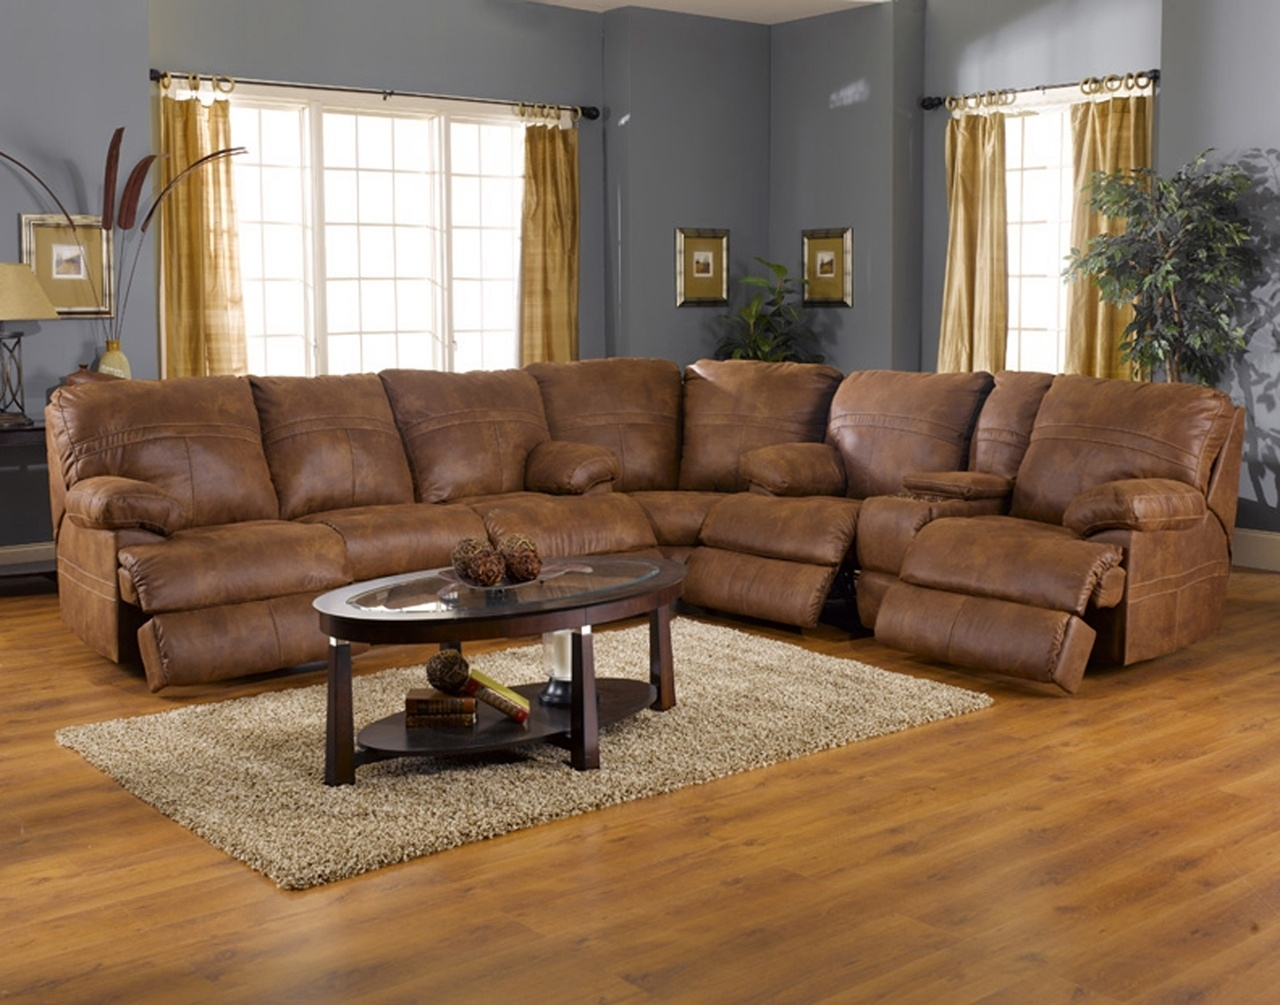 Elegant Leather Sectional Sofa With Recliner 89 Office Sofa Ideas Throughout Leather Recliner Sectional Sofas (View 7 of 10)